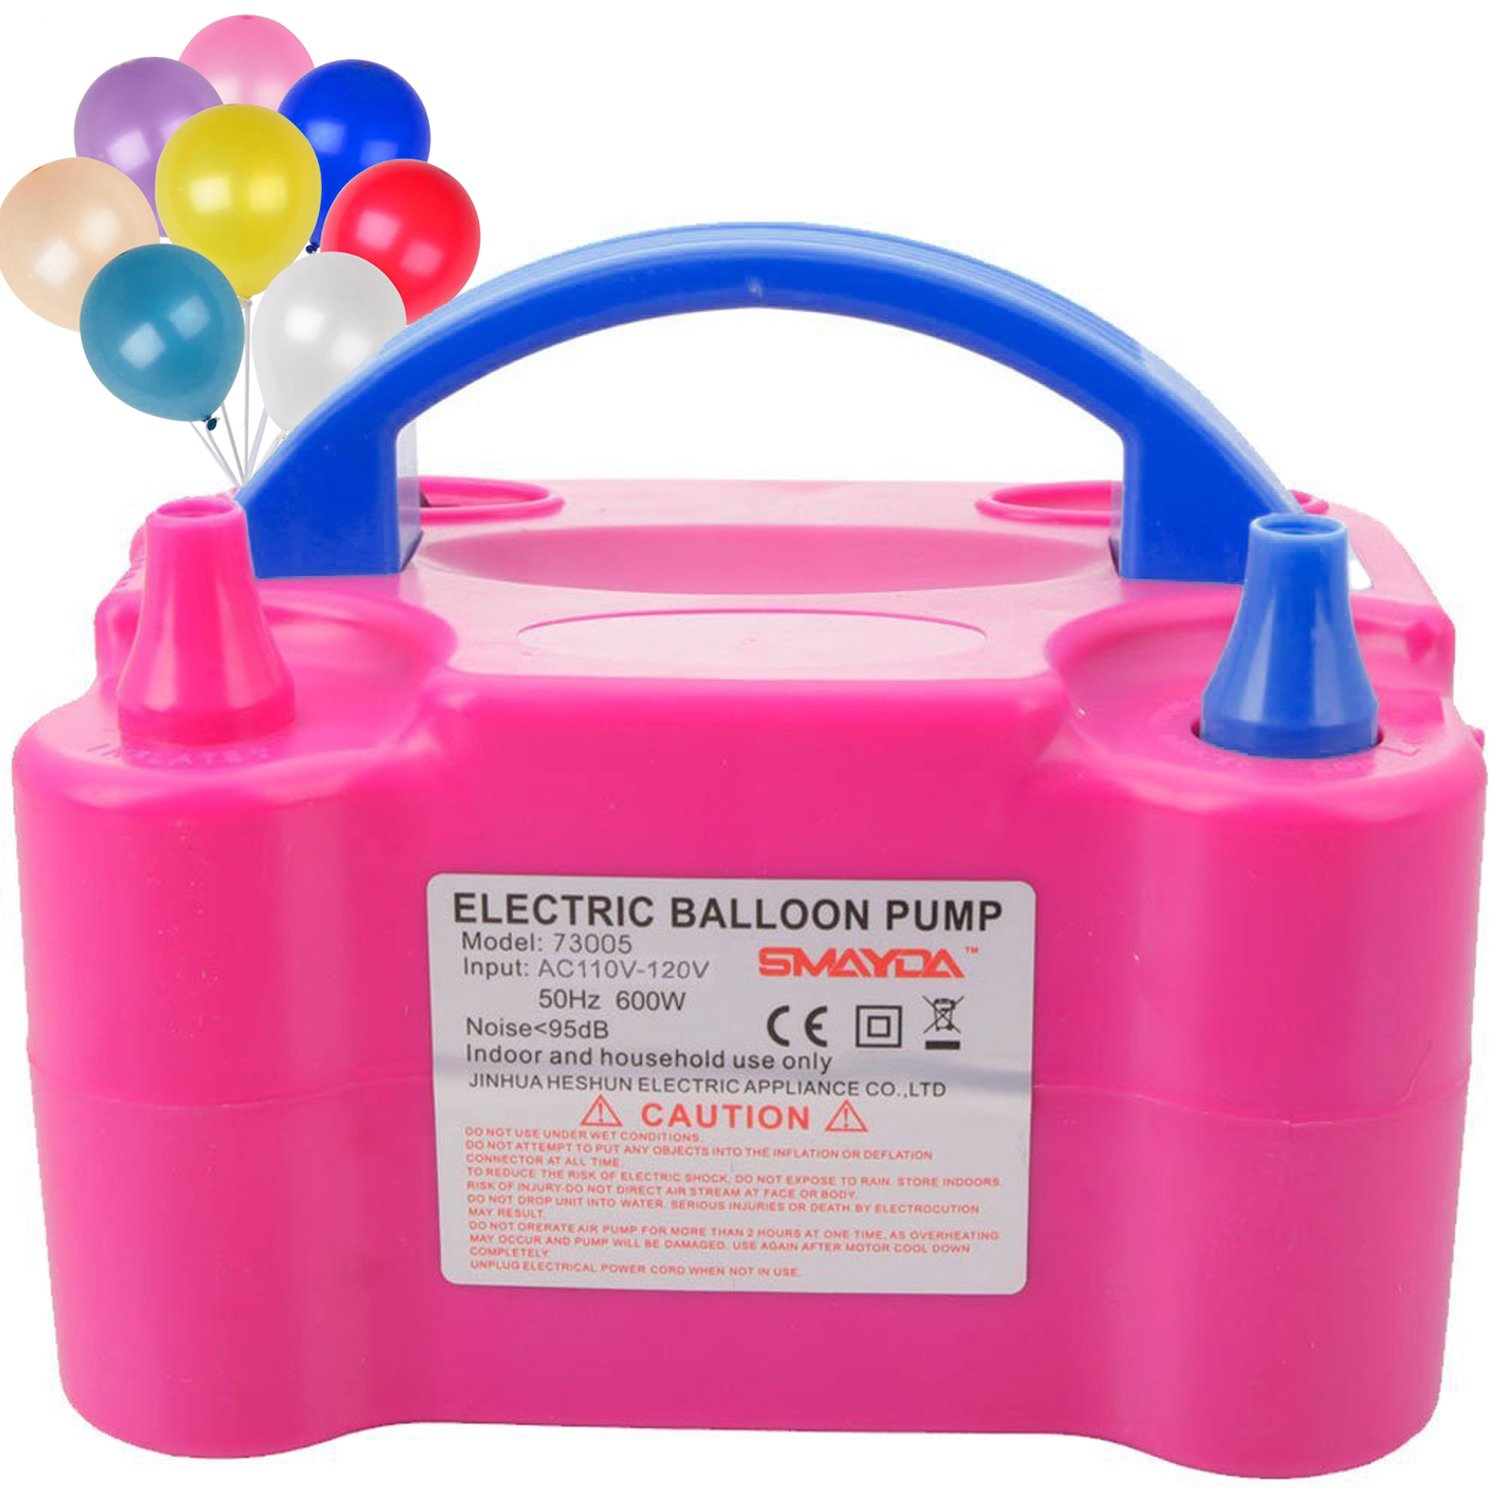 Pruk Portable Electric Balloon Air Pump - 600W 110V Dual Nozzle Blower Balloon Inflator for Wedding Birthday Party Activities Decoration